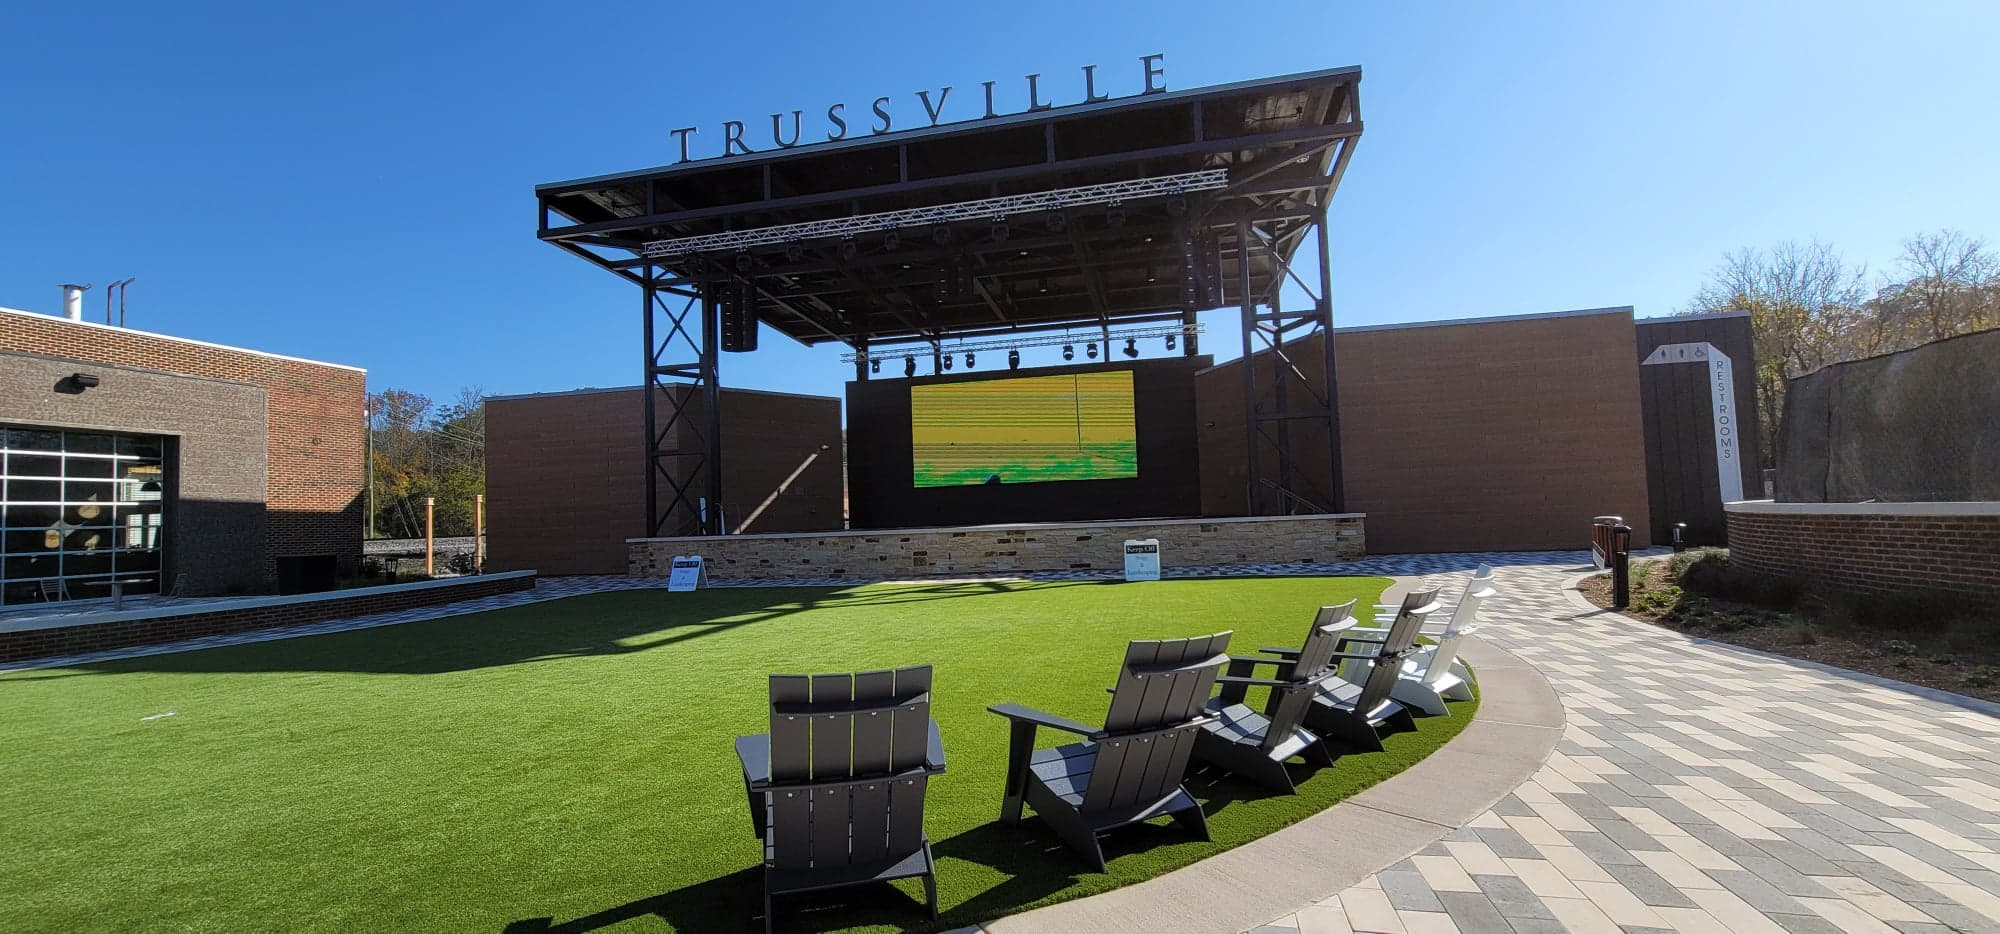 Trussville to consider exempting downtown entertainment area from noise ordinance